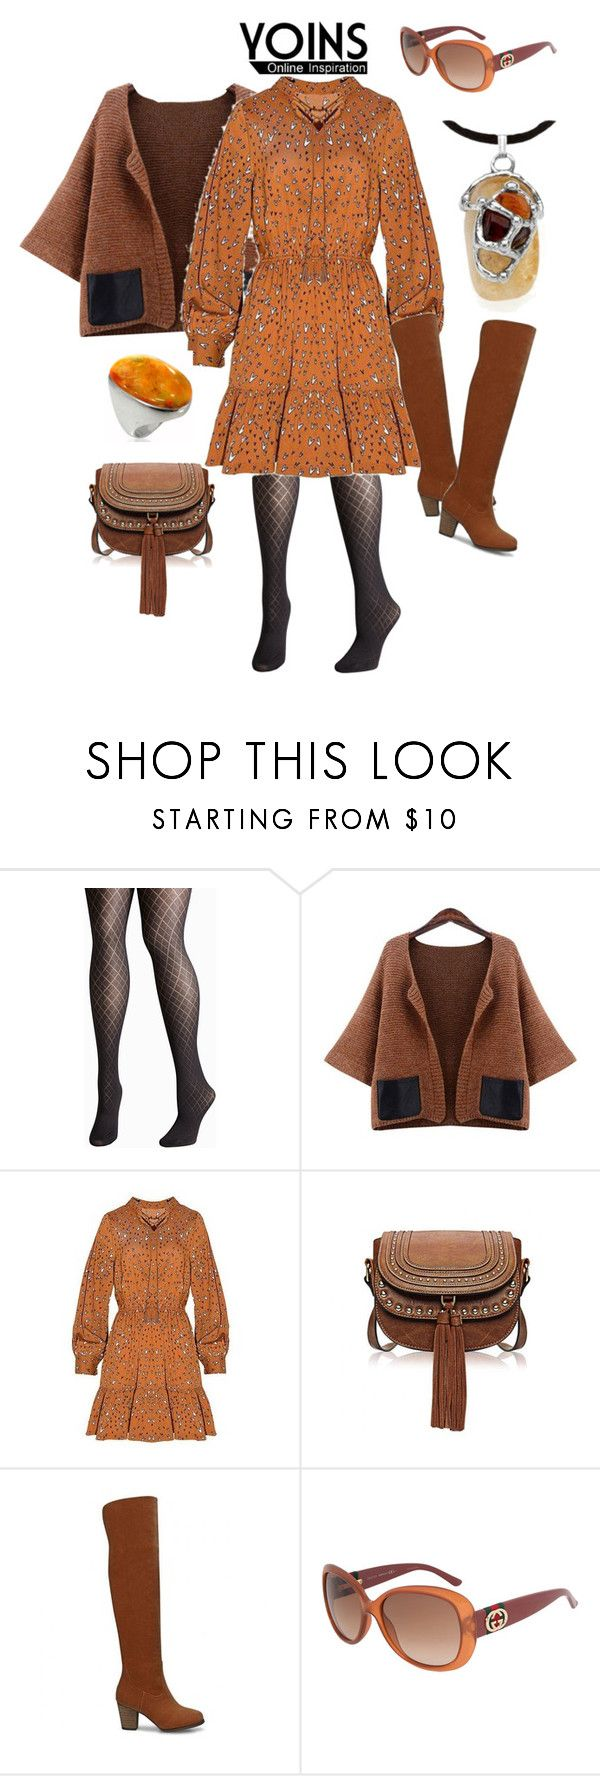 """""""http://yoins.me/203PQ2T"""" by giulia-sicilia ❤ liked on Polyvore featuring moda, Avenue, Gucci, BillyTheTree, women's clothing, women, female, woman, misses i juniors"""